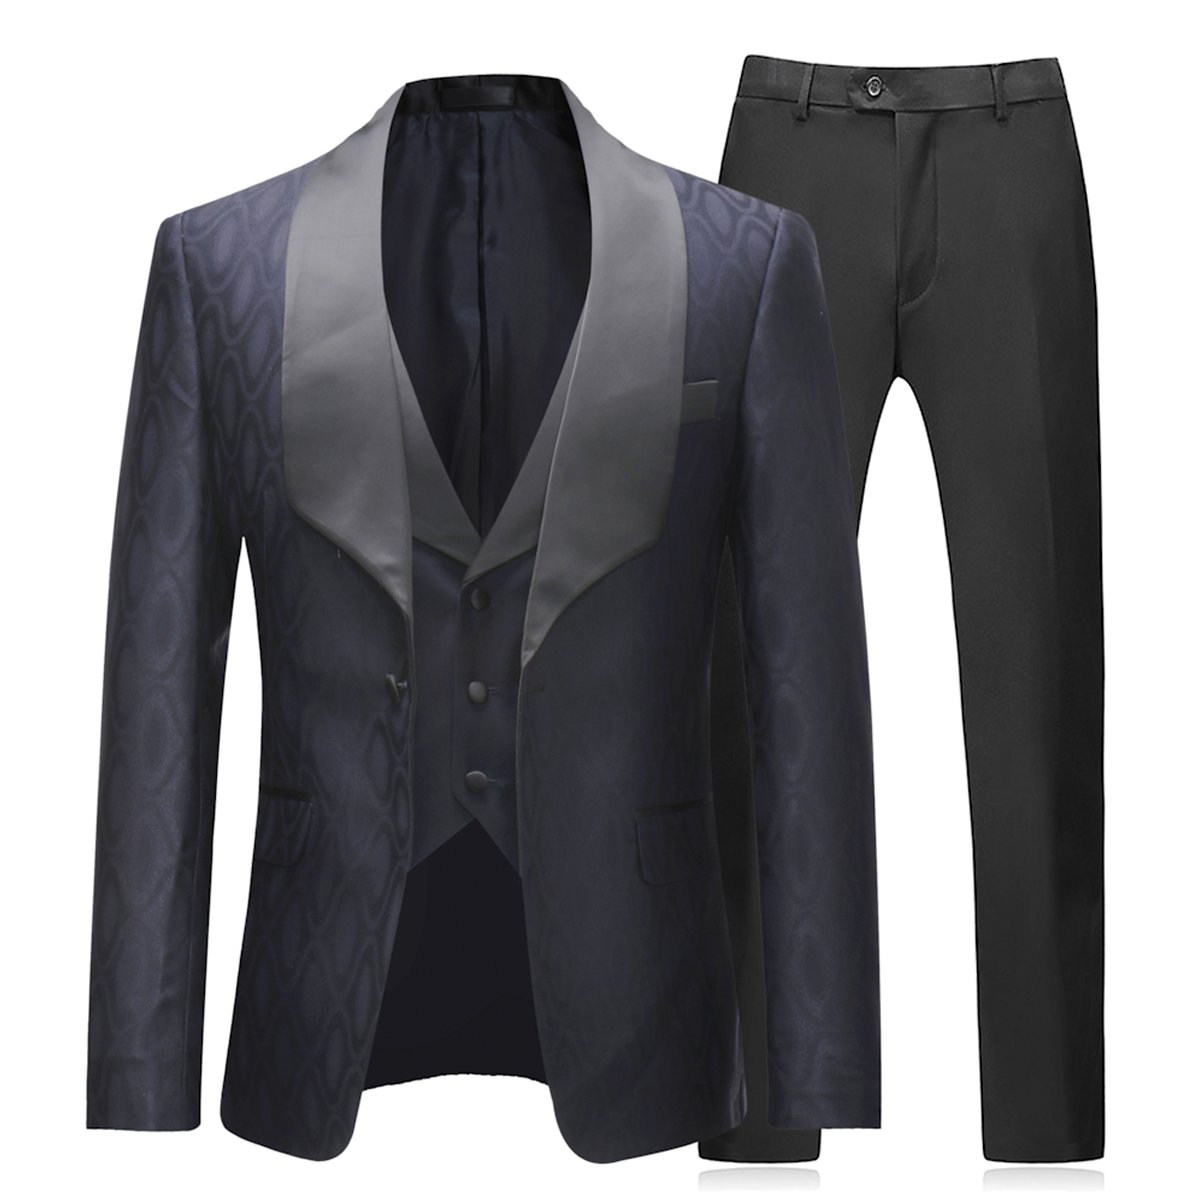 Men Suits 3 Piece Slim Fit Wedding Formal Business Dress Black Tuxedo Shawl Lapel Blazers Jacket Waistcoat Trousers